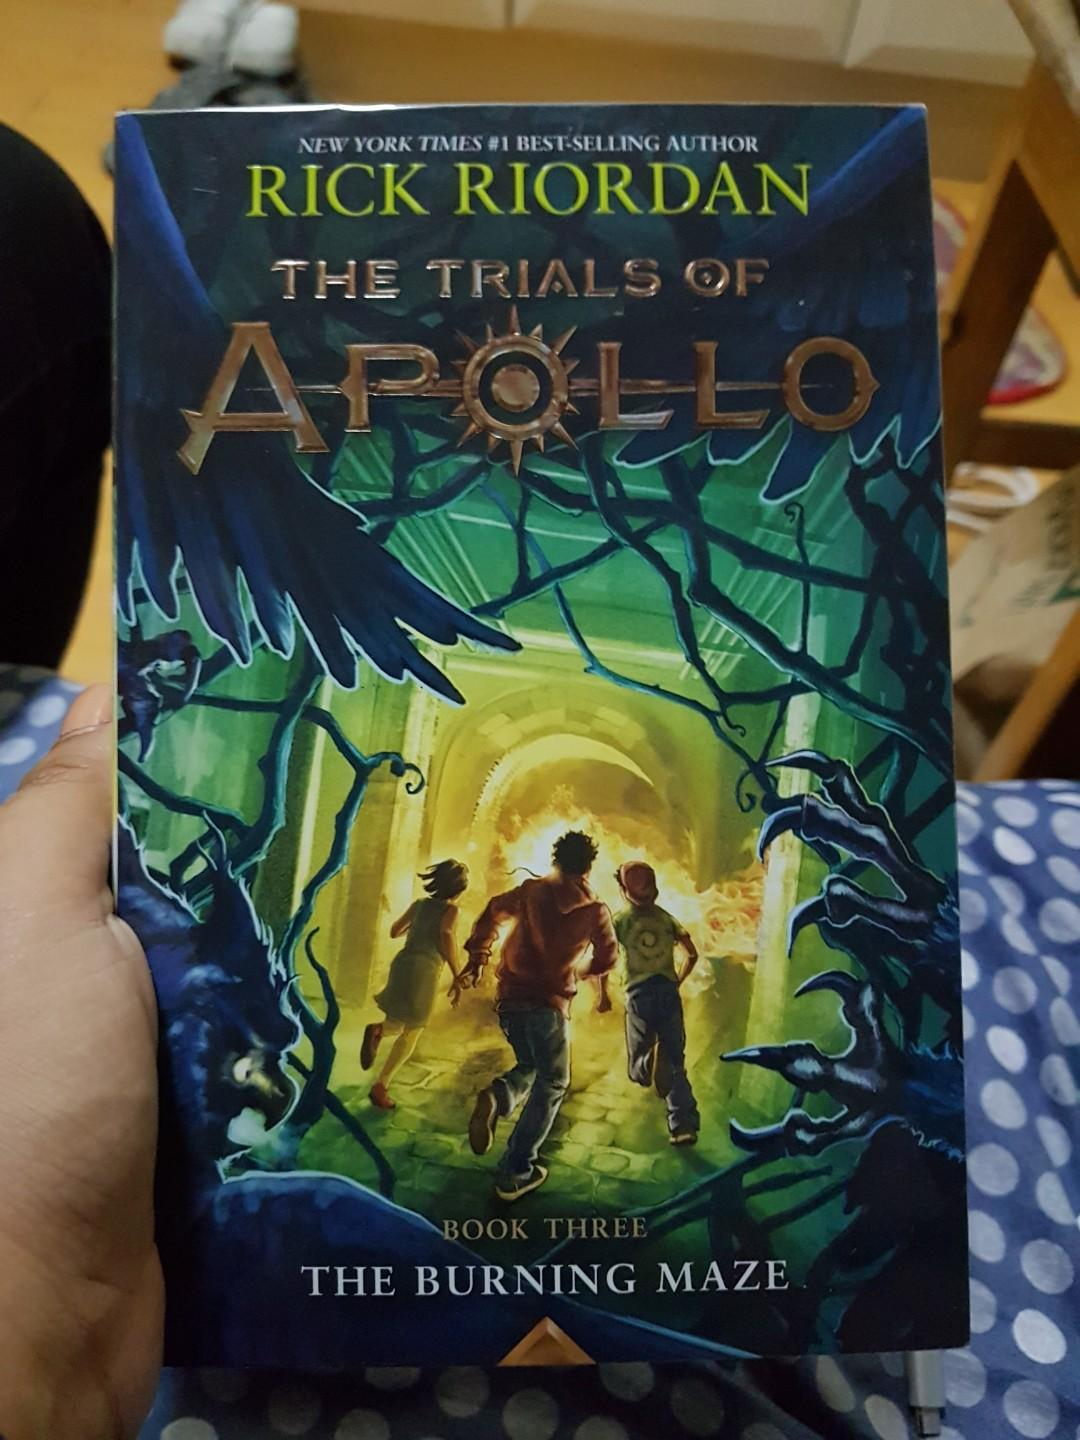 TRIALS OF APOLLO BY RICK RIORDAN BOOK 3 THE BURNING MAZE